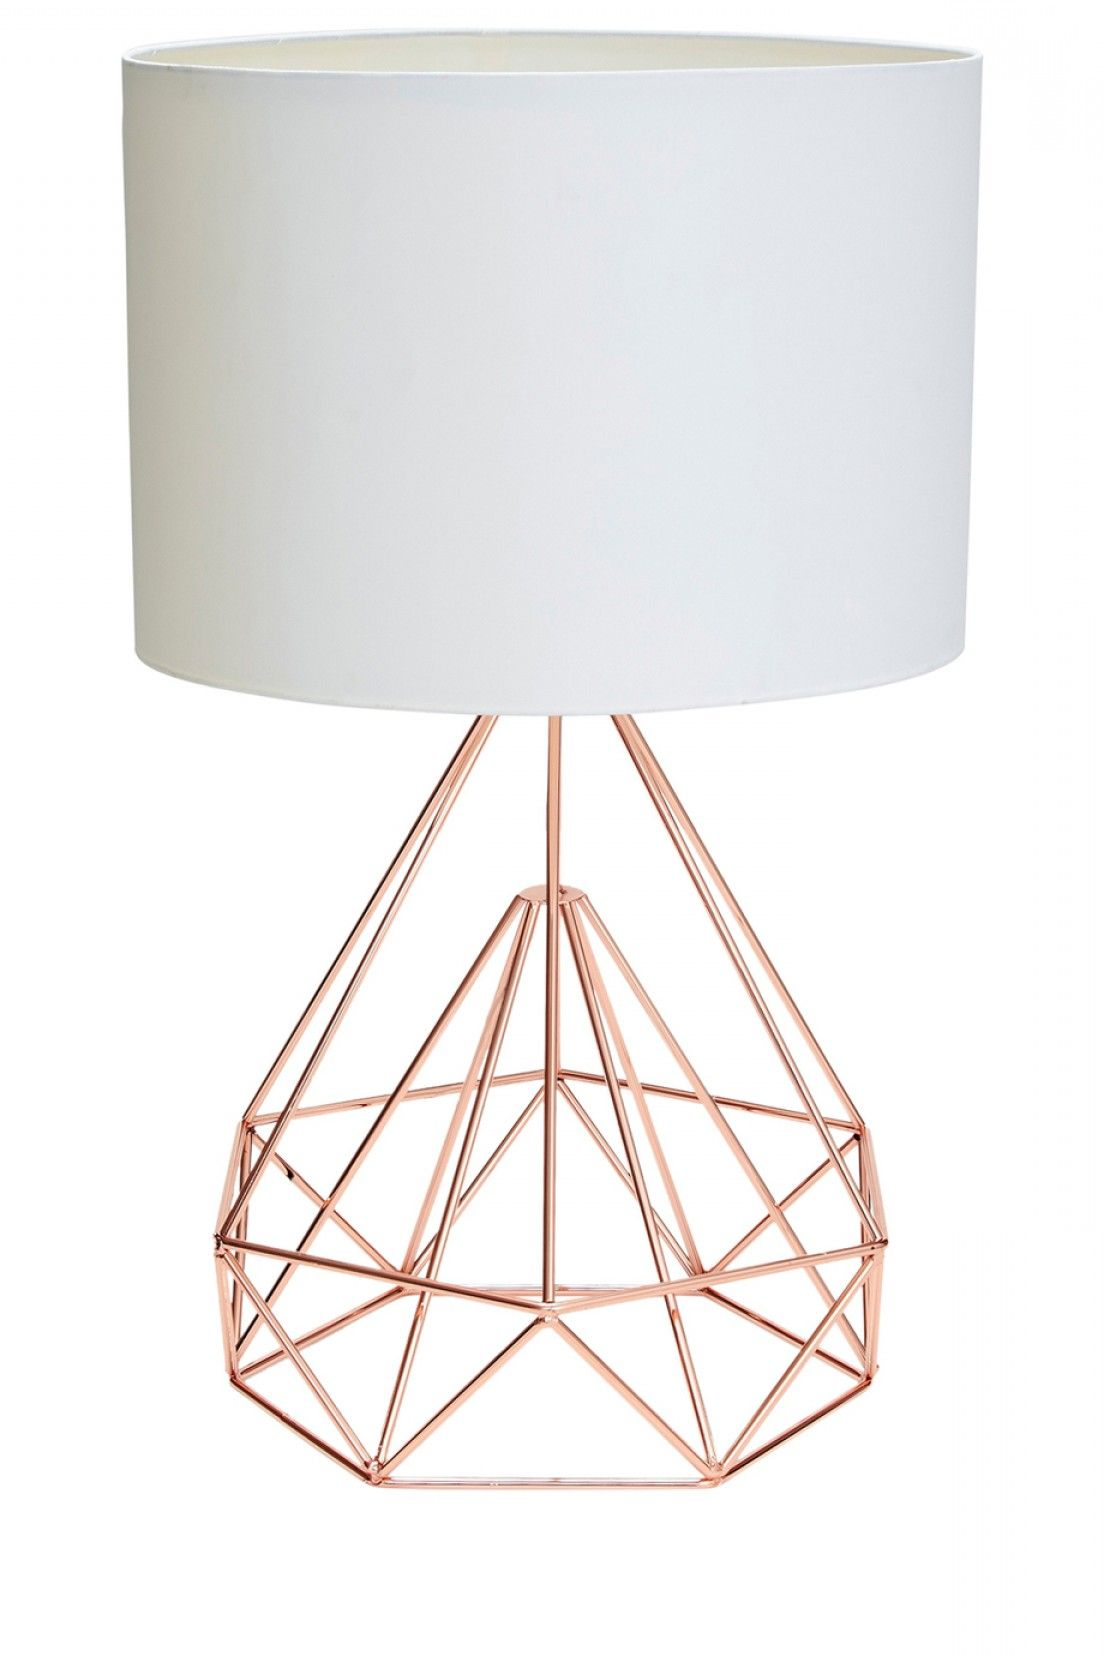 lighting hanging light milk copper rose pendant gold the lights pixball cool chandelier modern glass fixtures lamp first cage top class anthropologie ceiling geometric cream chic l